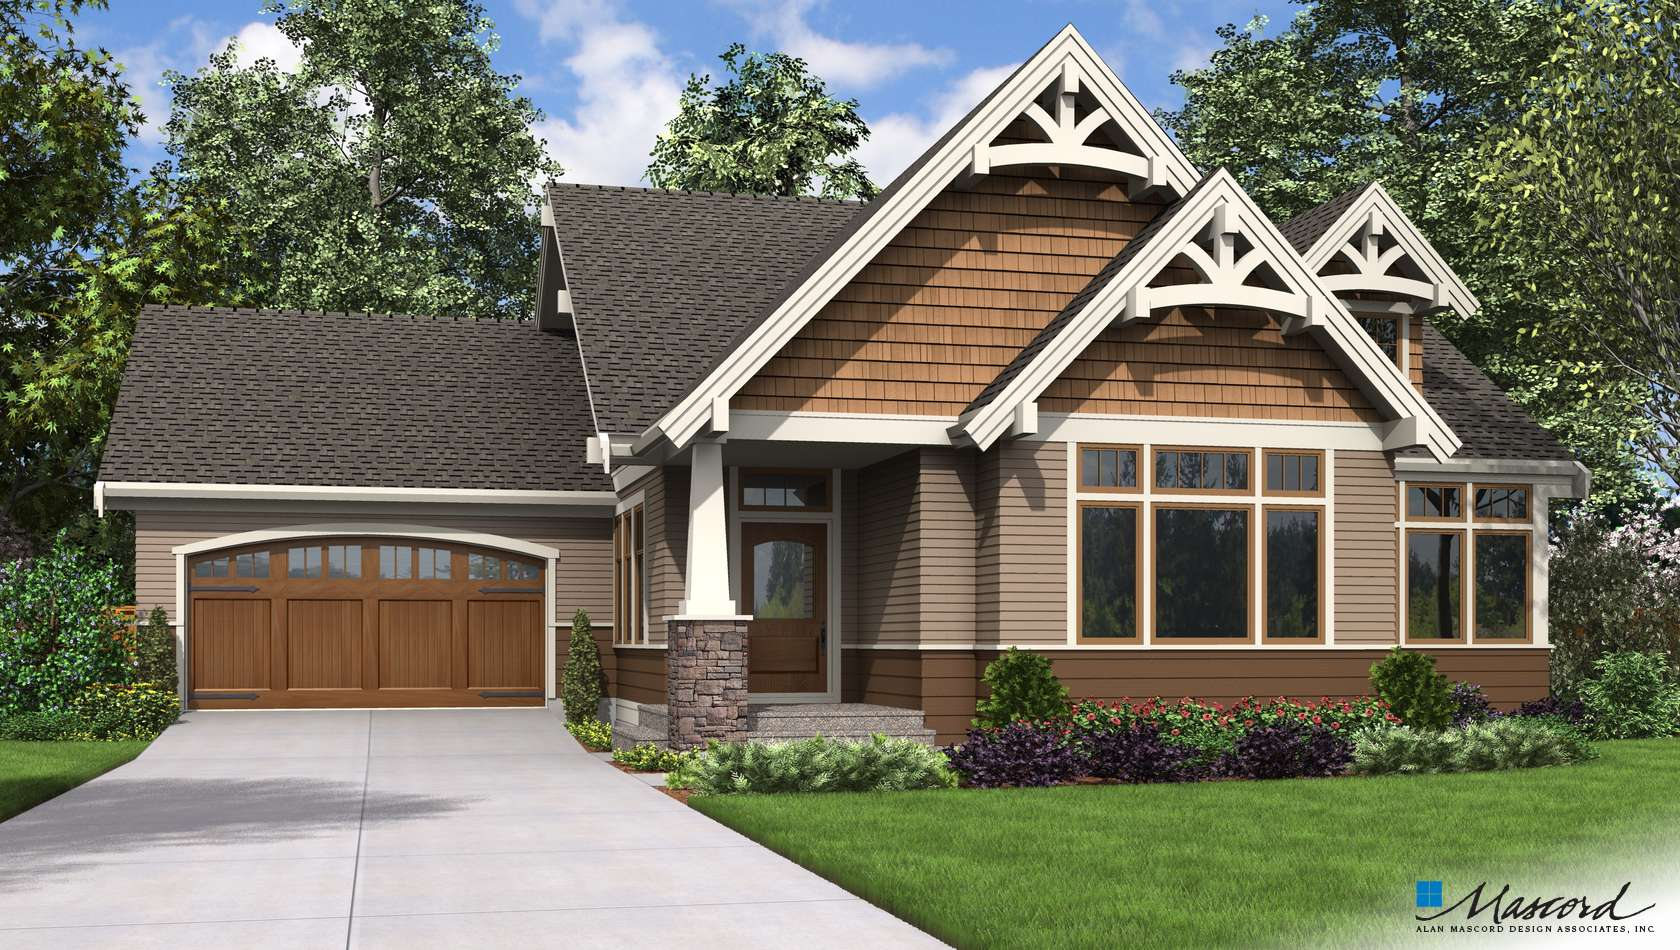 Main image for house plan 22212: The Selma